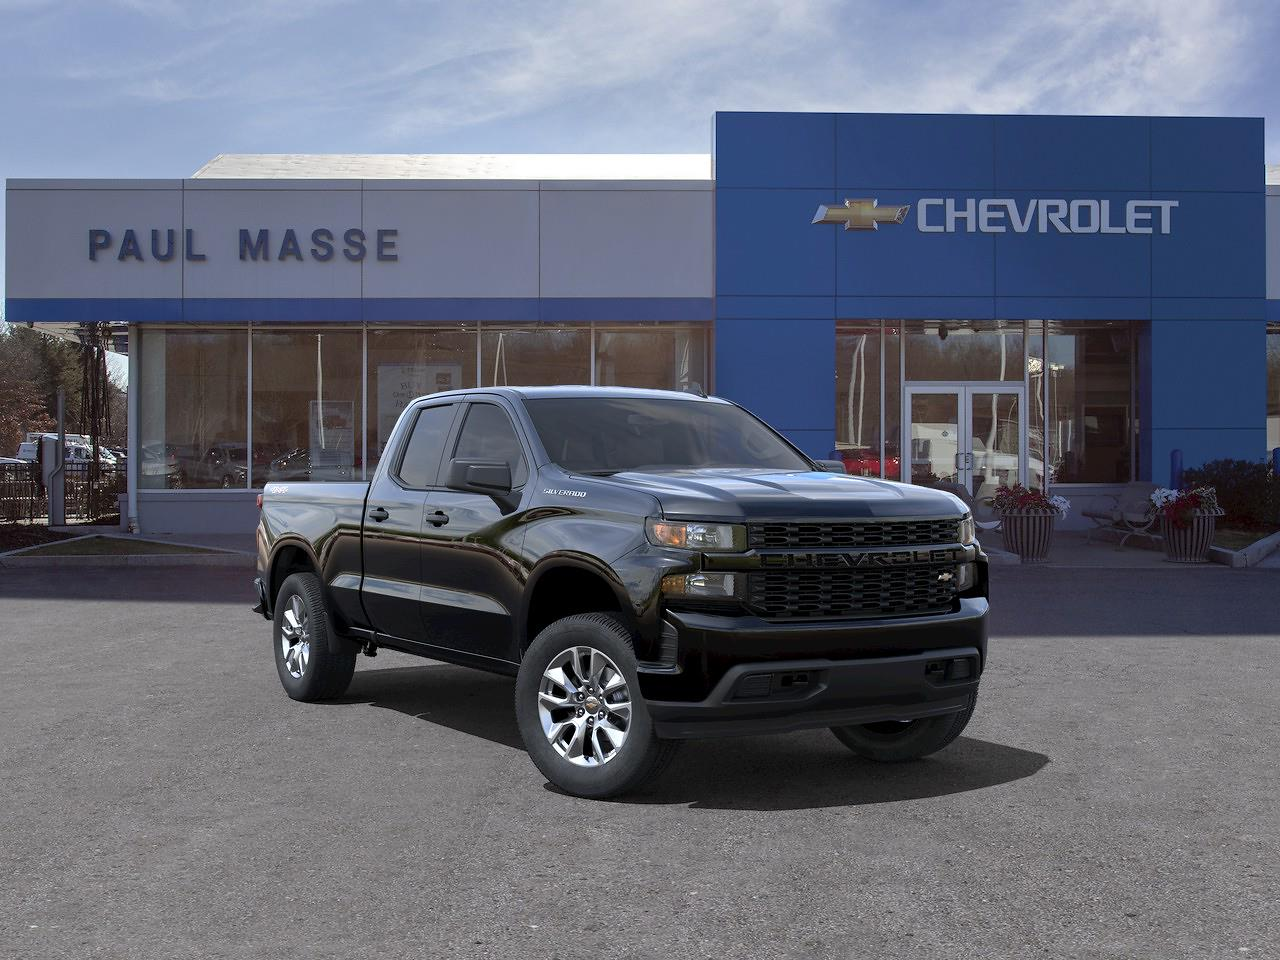 2021 Chevrolet Silverado 1500 Double Cab 4x4, Pickup #CK1392 - photo 1